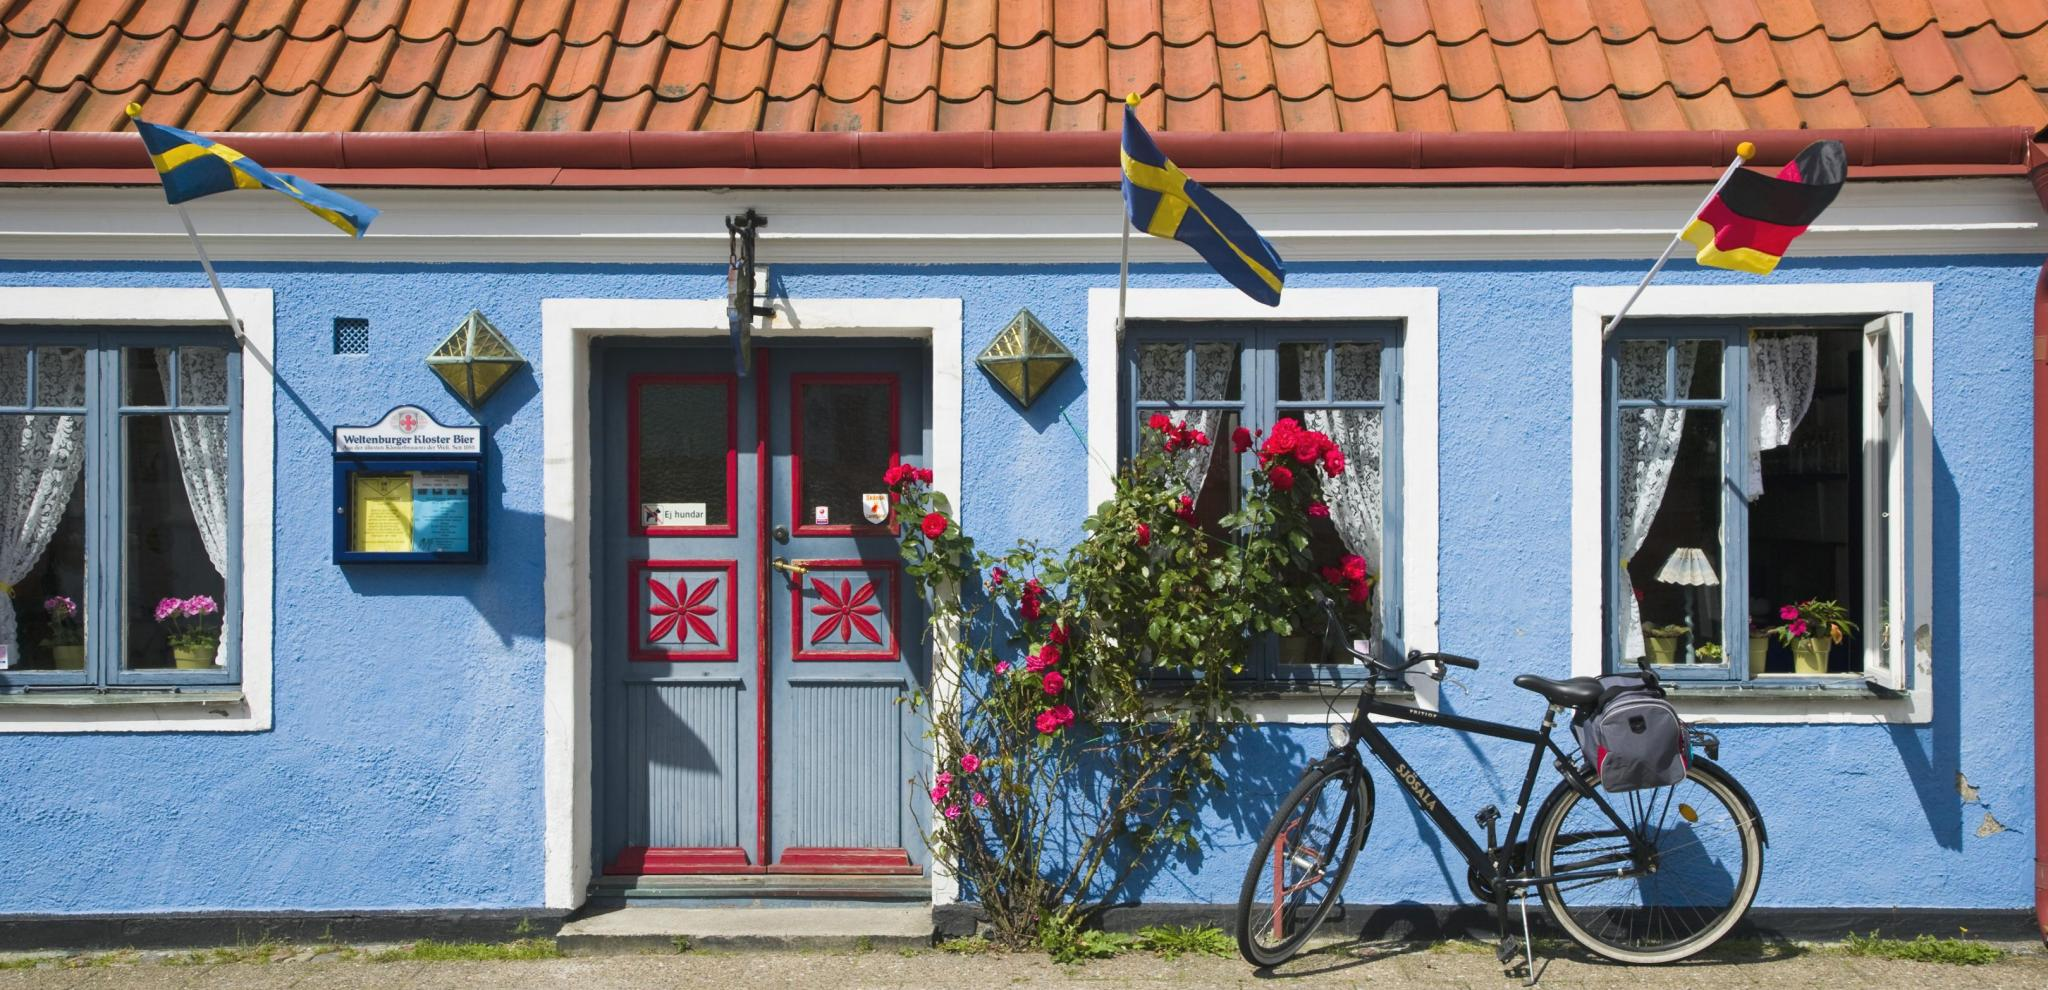 Bicycle parked outside a blue hose in Ystad